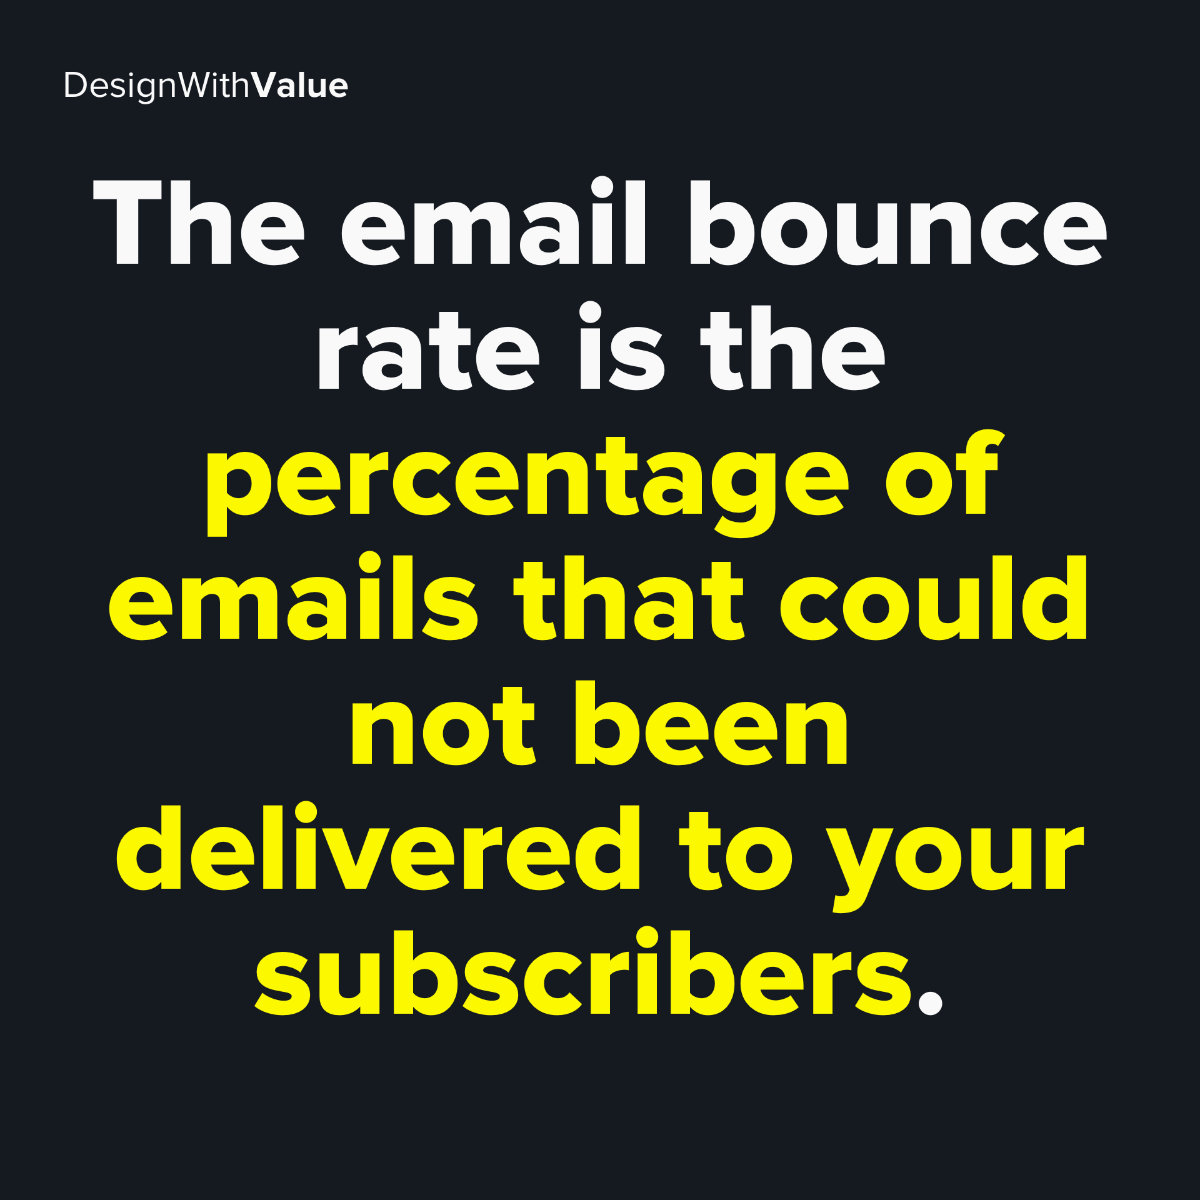 The email bounce rate is the percentage of emails that could not been delivered to your subscribers